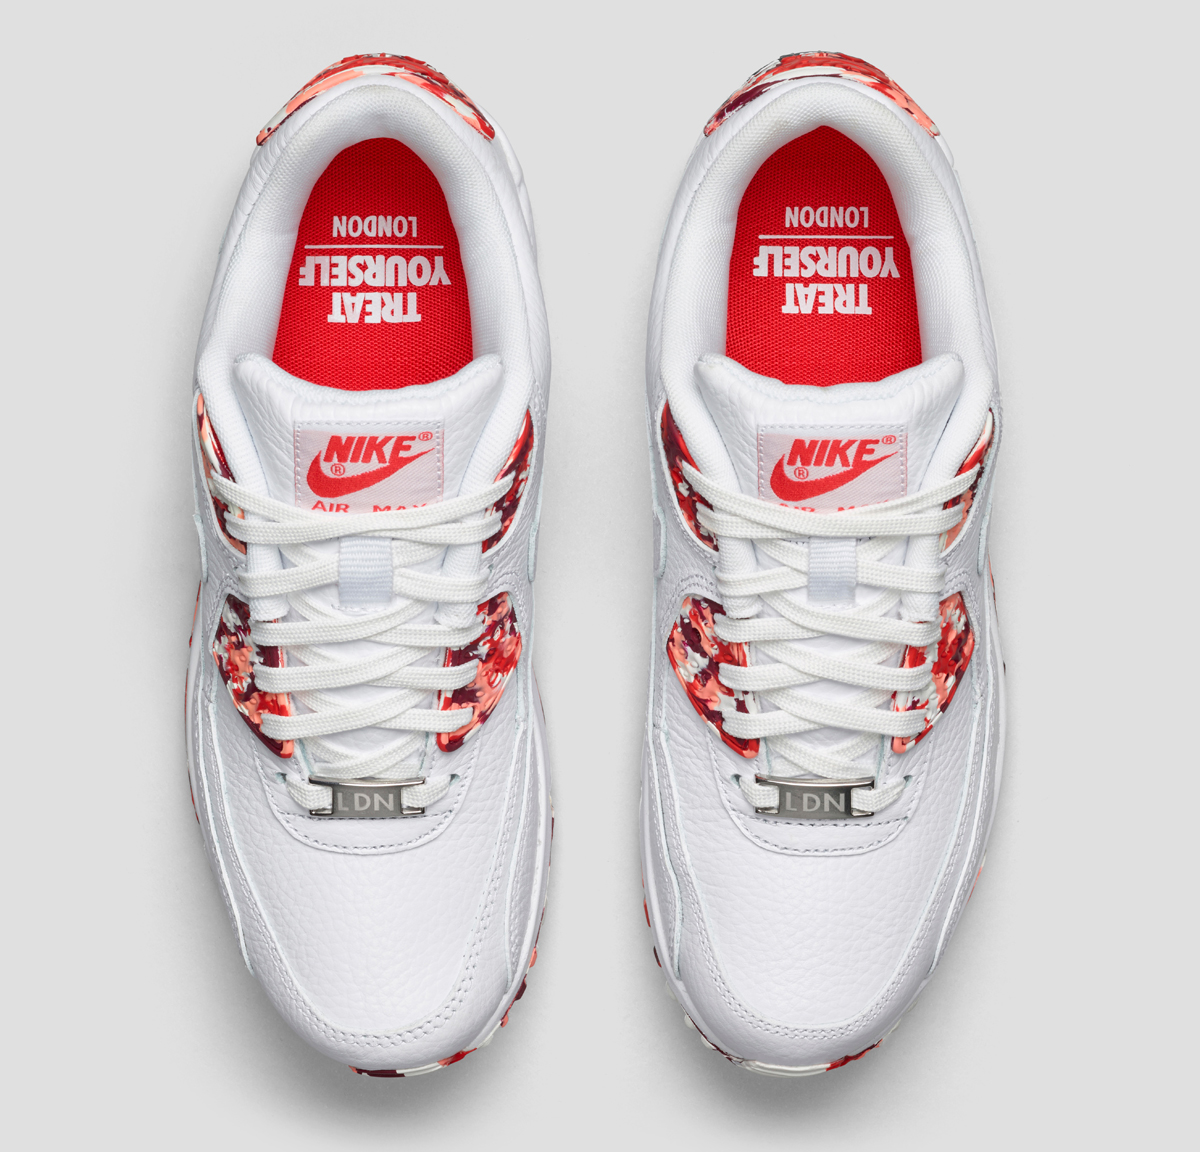 newest 0ced4 6a5d9 Nikes Sweetest Pack of Air Maxes Ever